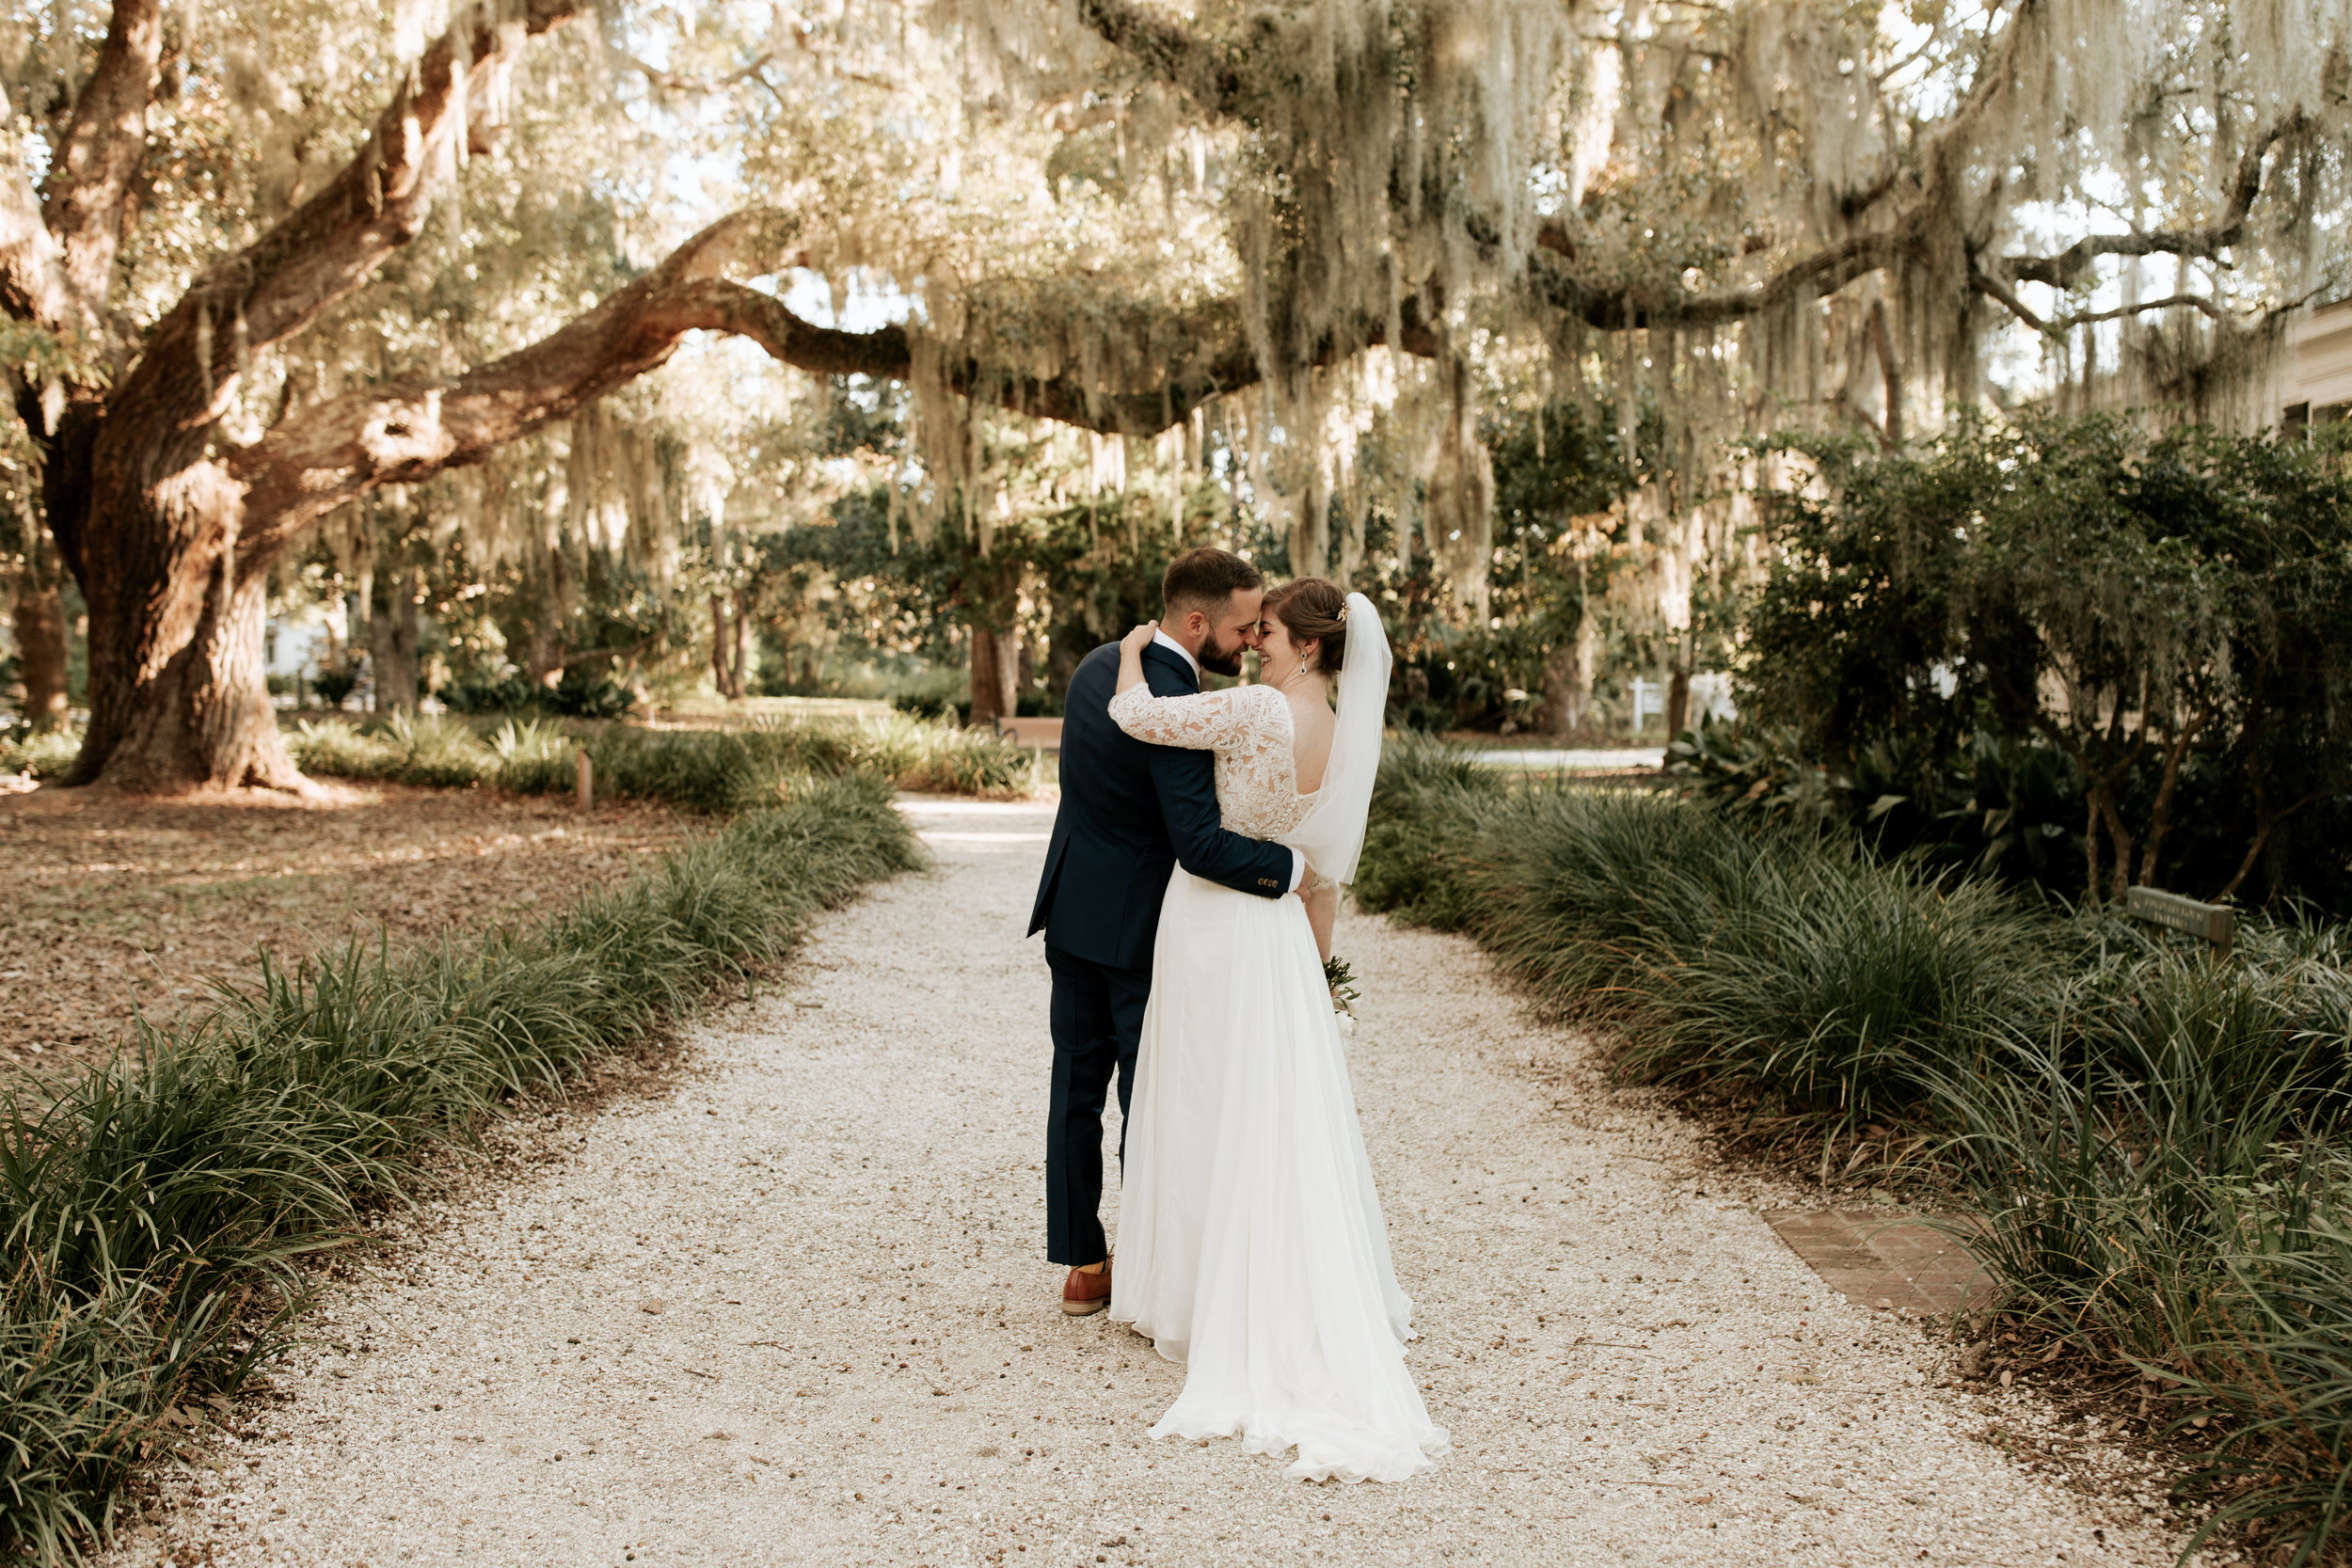 Inspiration is everywhere for your wedding day, but let's be real… - You worked hard to get to this point. Relationships are work. They are blood sweat and tears. They are celebrating the highs and holding on to each other in the lows. Let's create space space for your own moments to unfold.